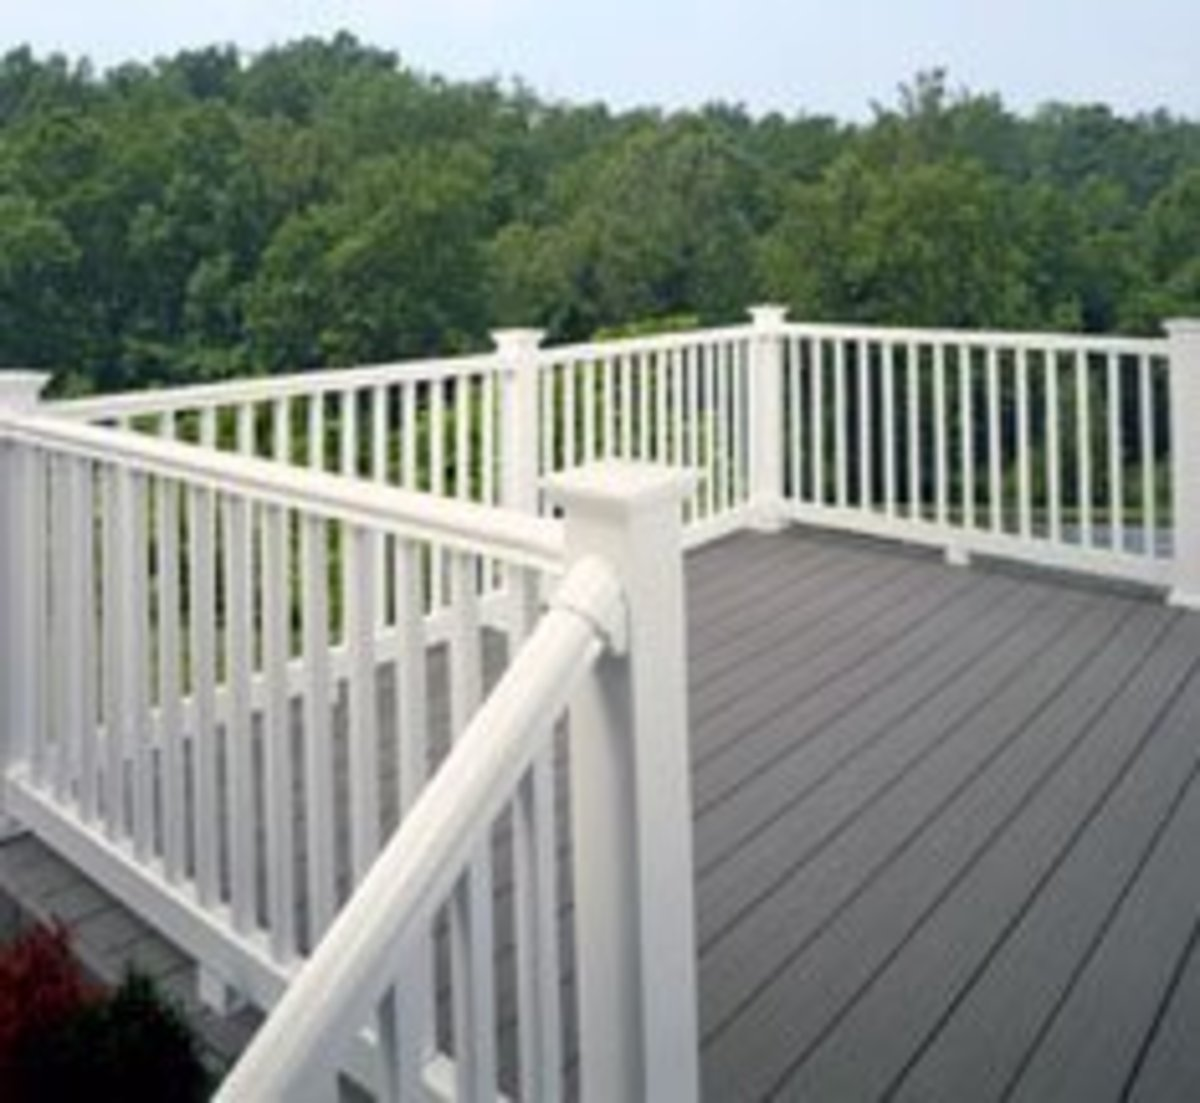 Remodelingmobile Home on Home Improvement Porch Deck Railings   Great Remodeling Design Ideas